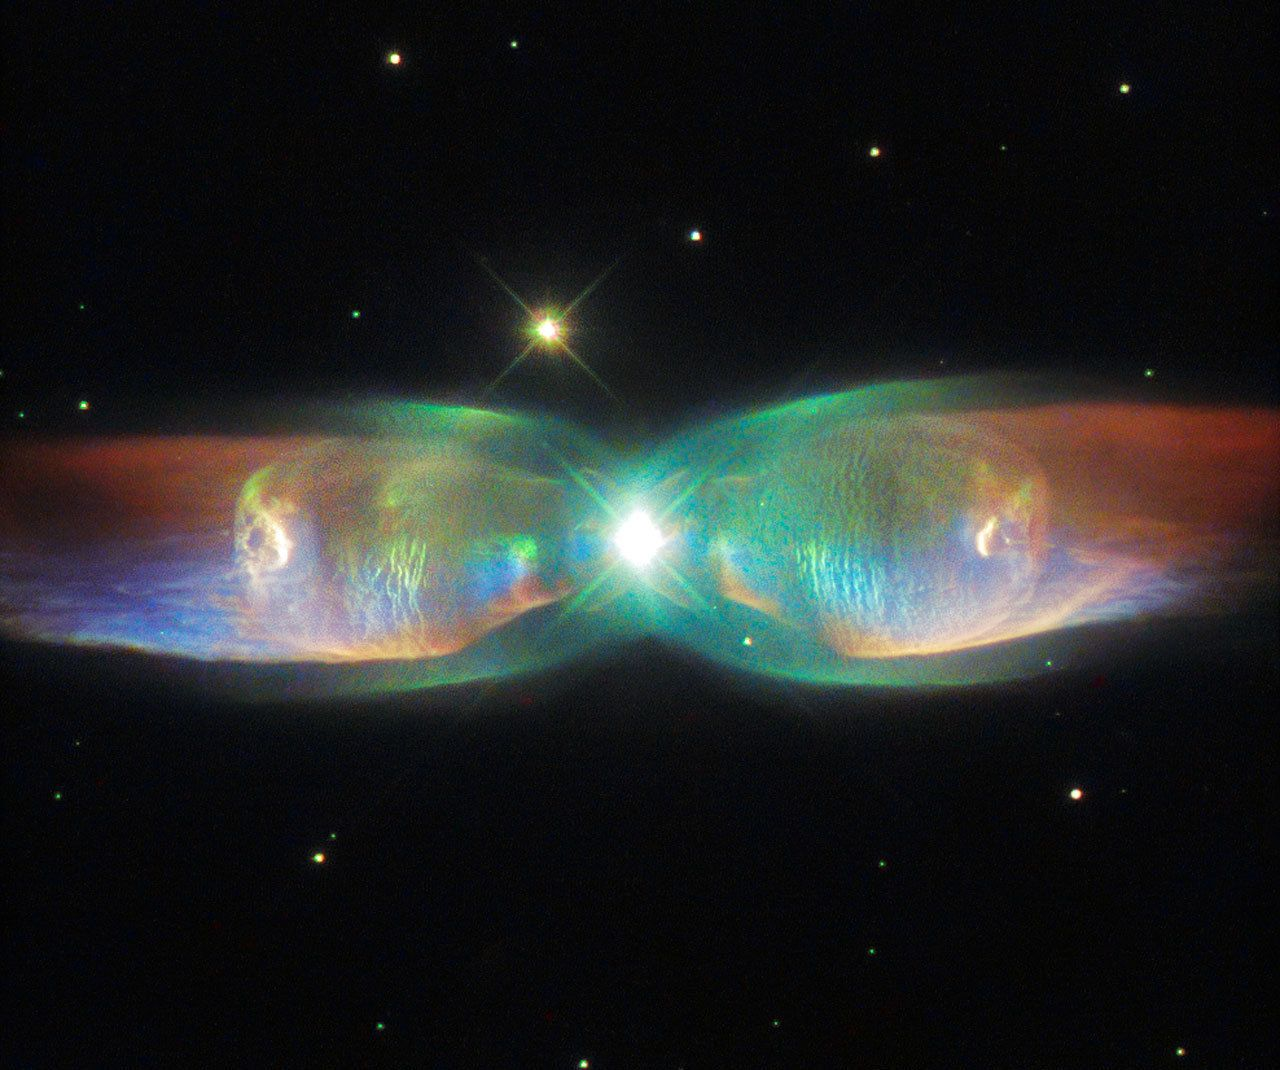 "<span class='image-component__caption' itemprop=""caption""><span style=""font-family: Arial, Helvetica, sans-serif; font-size: 14px; line-height: 20px; background-color: #eeeeee;"">The shimmering colors visible in this Hubble Space Telescope image show off the remarkable complexity of the Twin Jet Nebula, or PN M2-9.</span></span>"